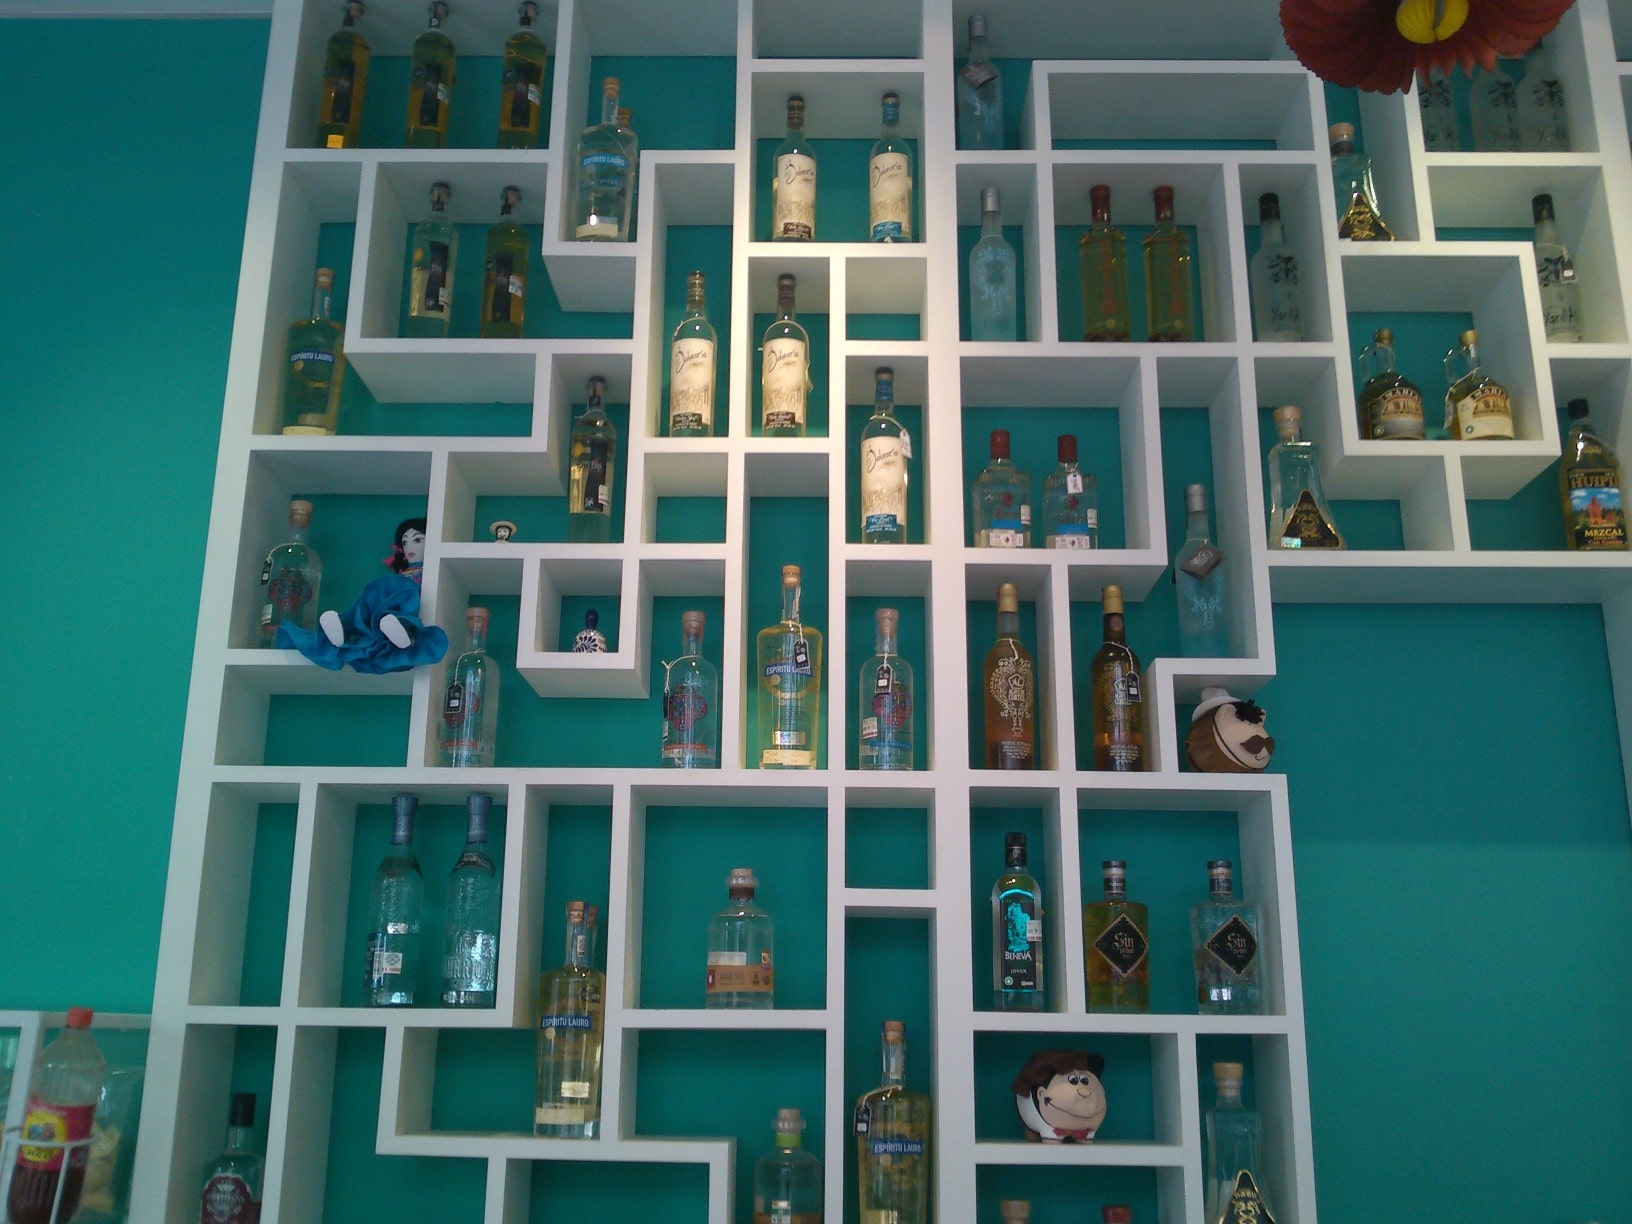 A fun thing to do in Mexico City is try the samples at the Museo del Tequila y el Mezcal